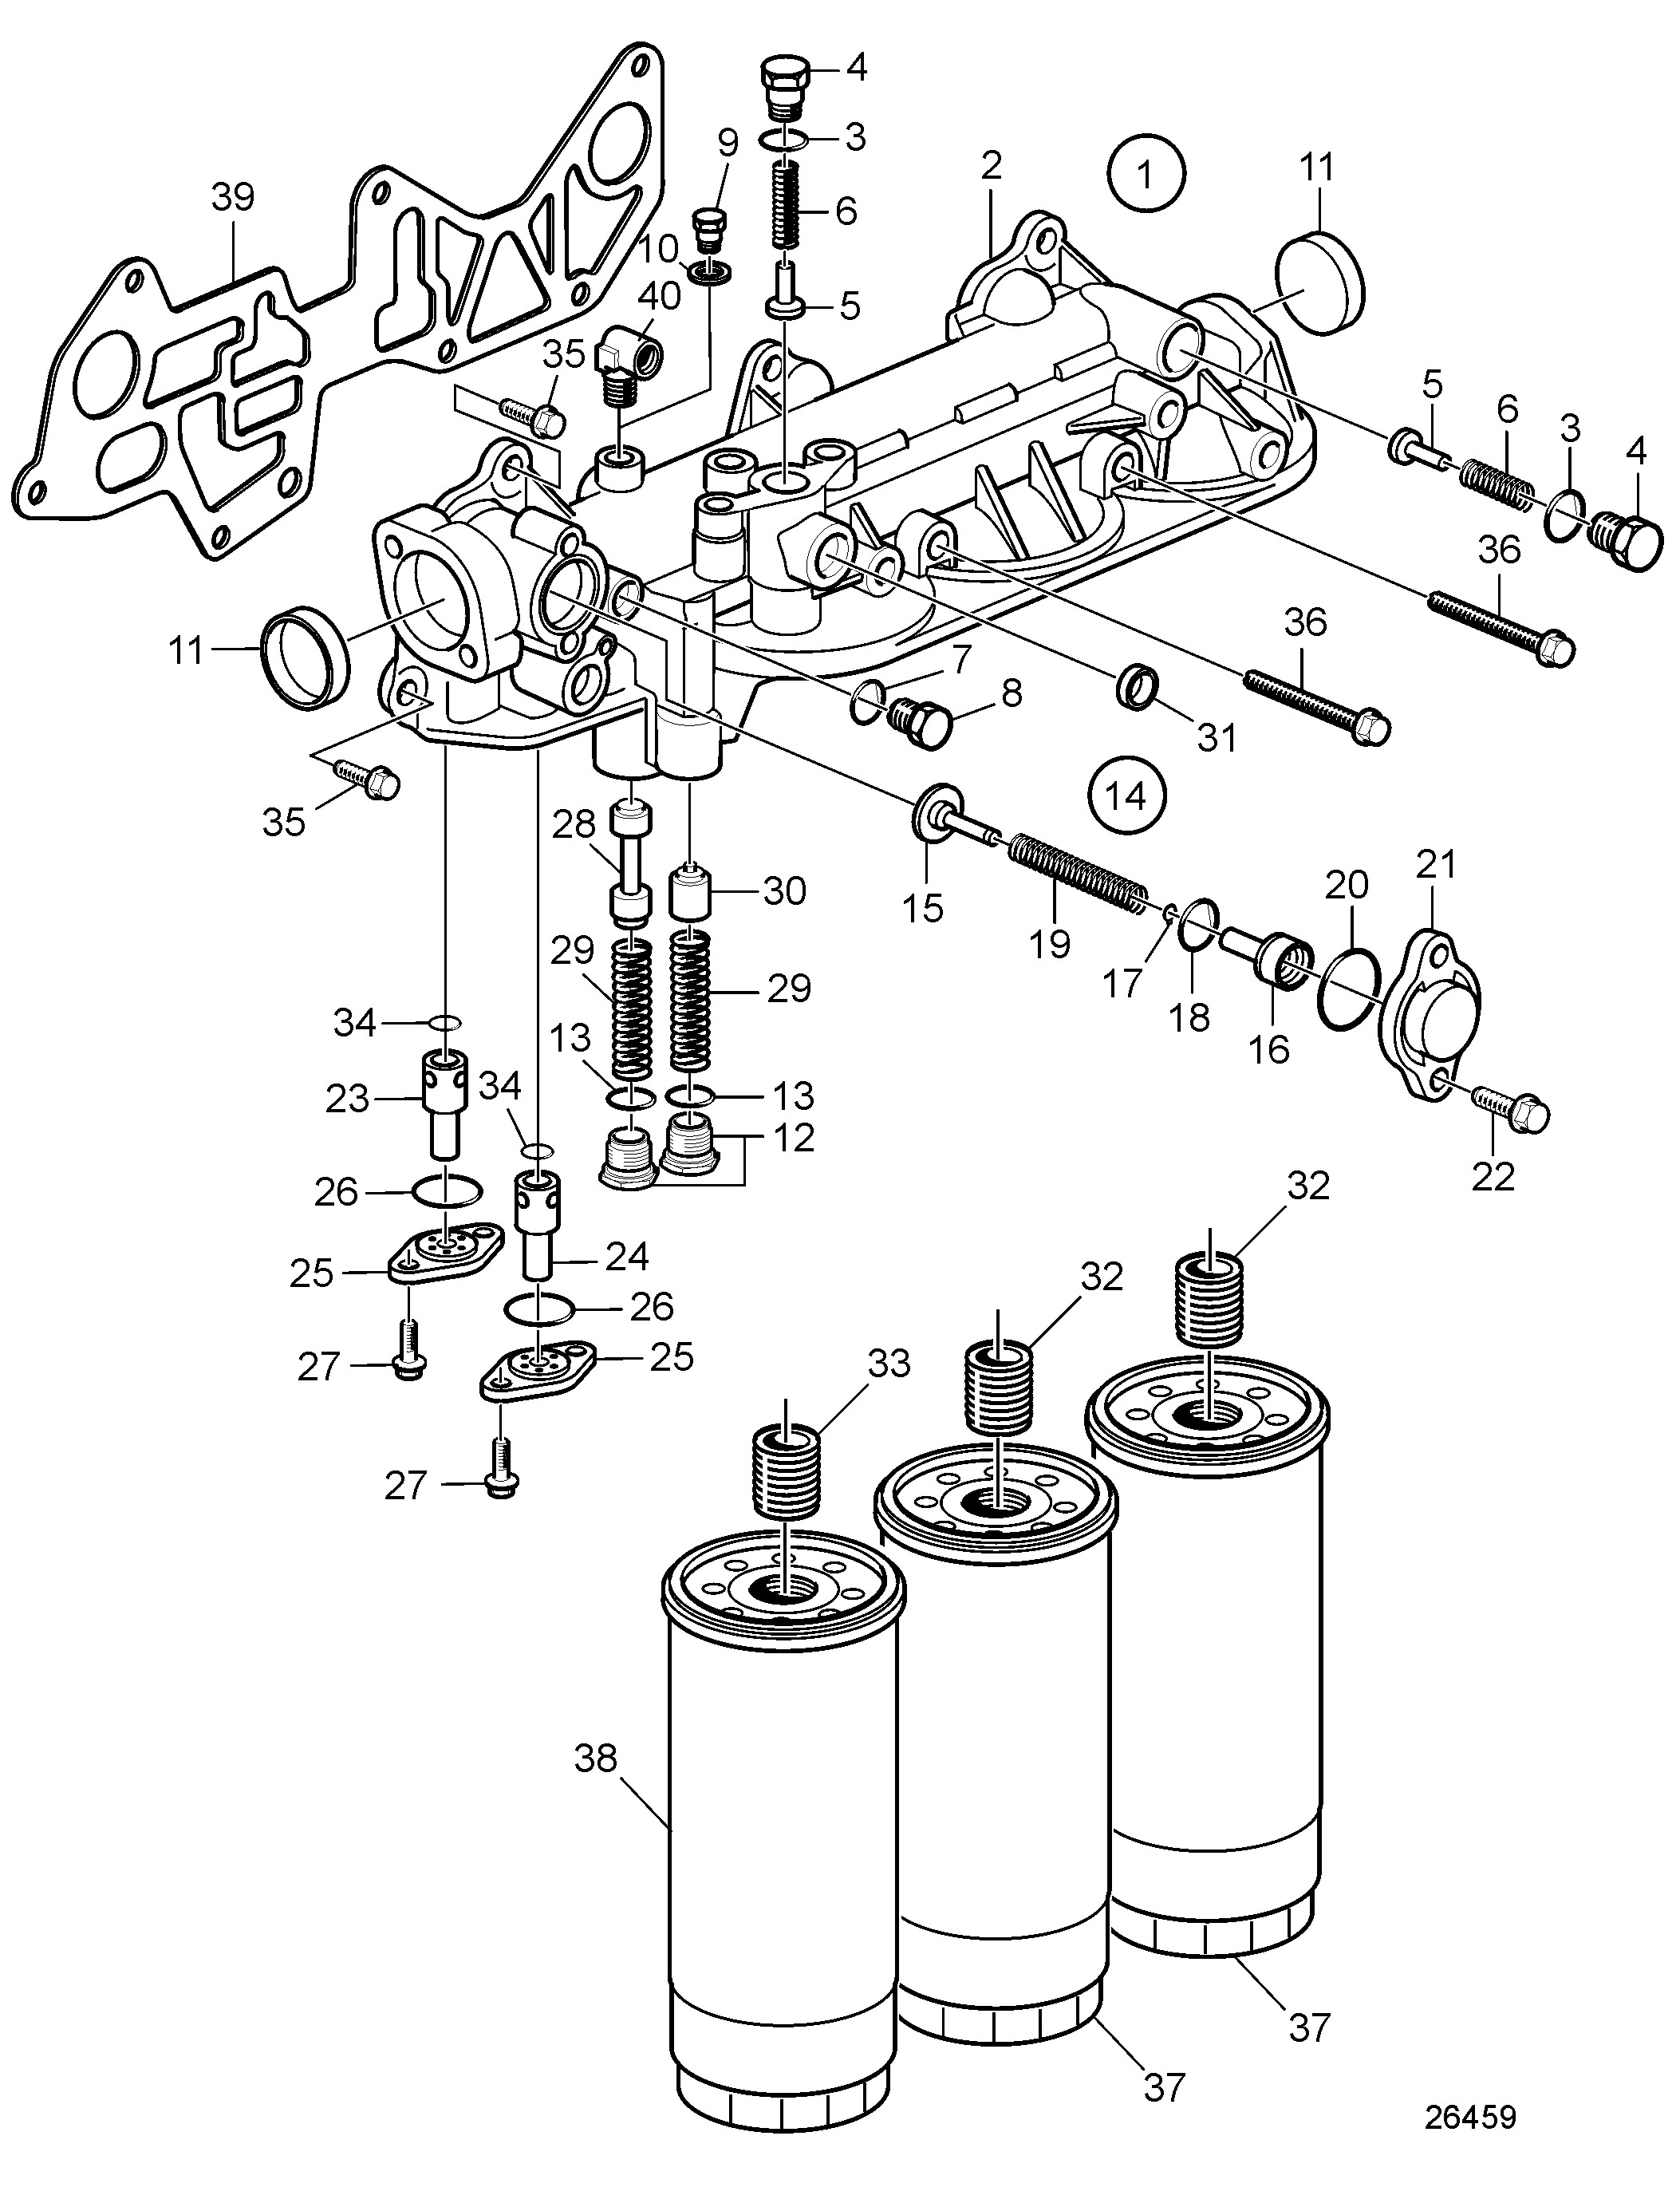 Main Engine Lube Oil System Diagram Oil Filter Housing and Oil Filter Category Details Of Main Engine Lube Oil System Diagram